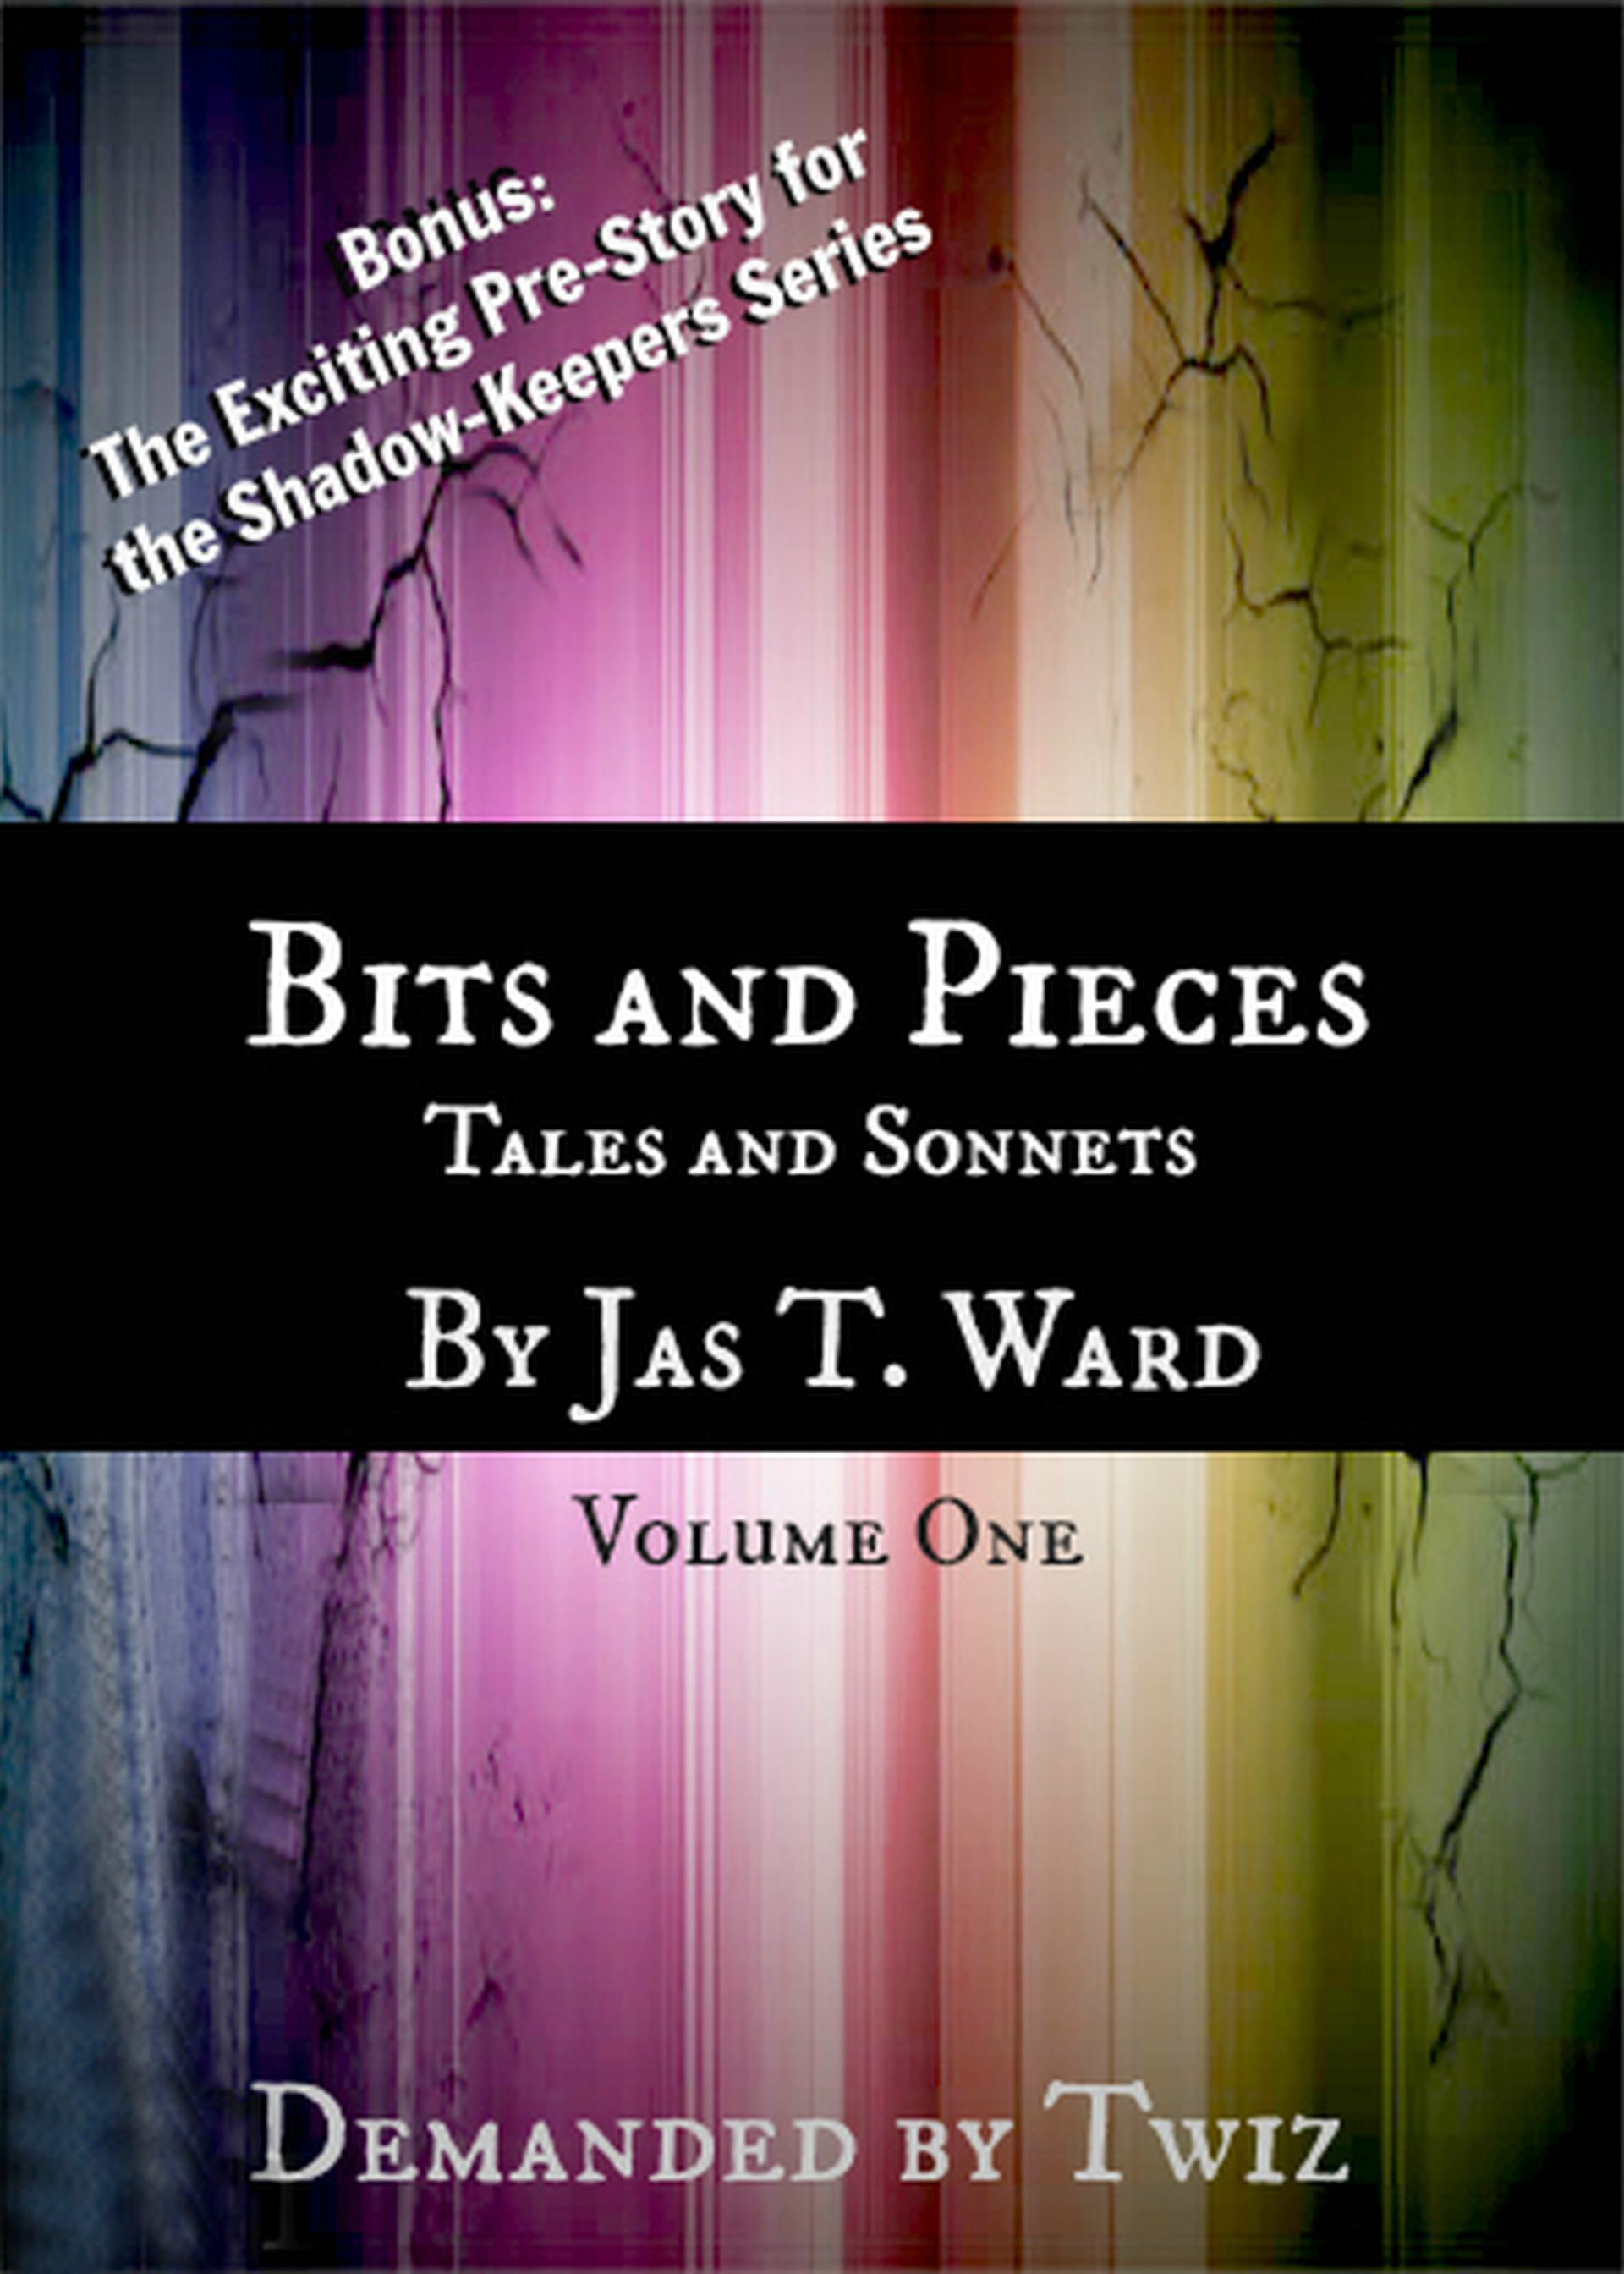 Bits and Pieces: Tales and Sonnets by Jas T. Ward